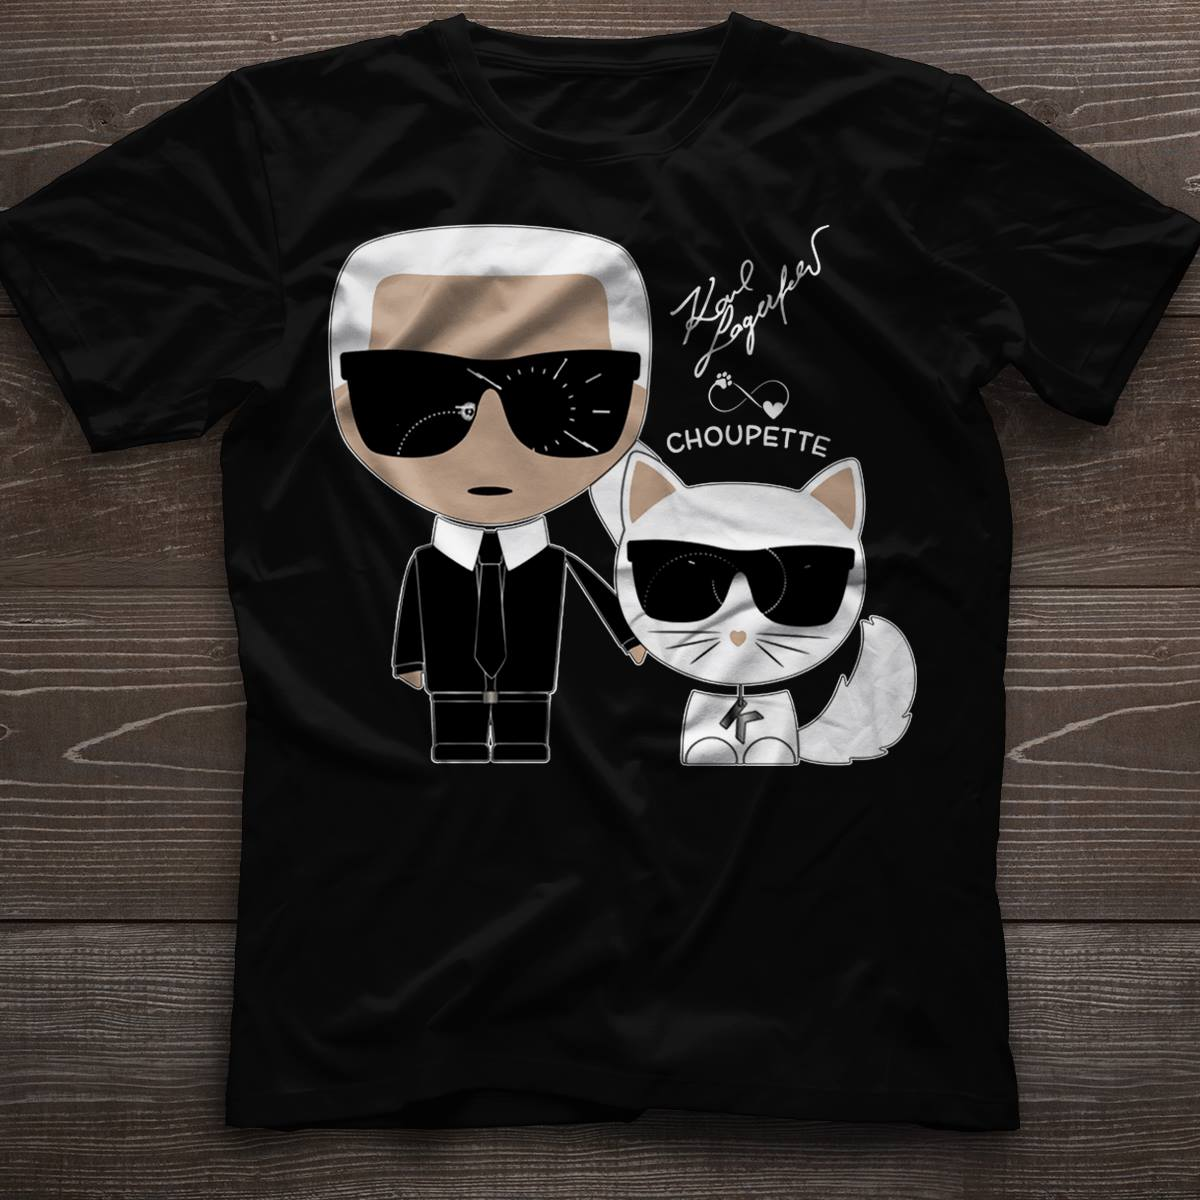 Karl Lagerfeld and Choupette Shirt